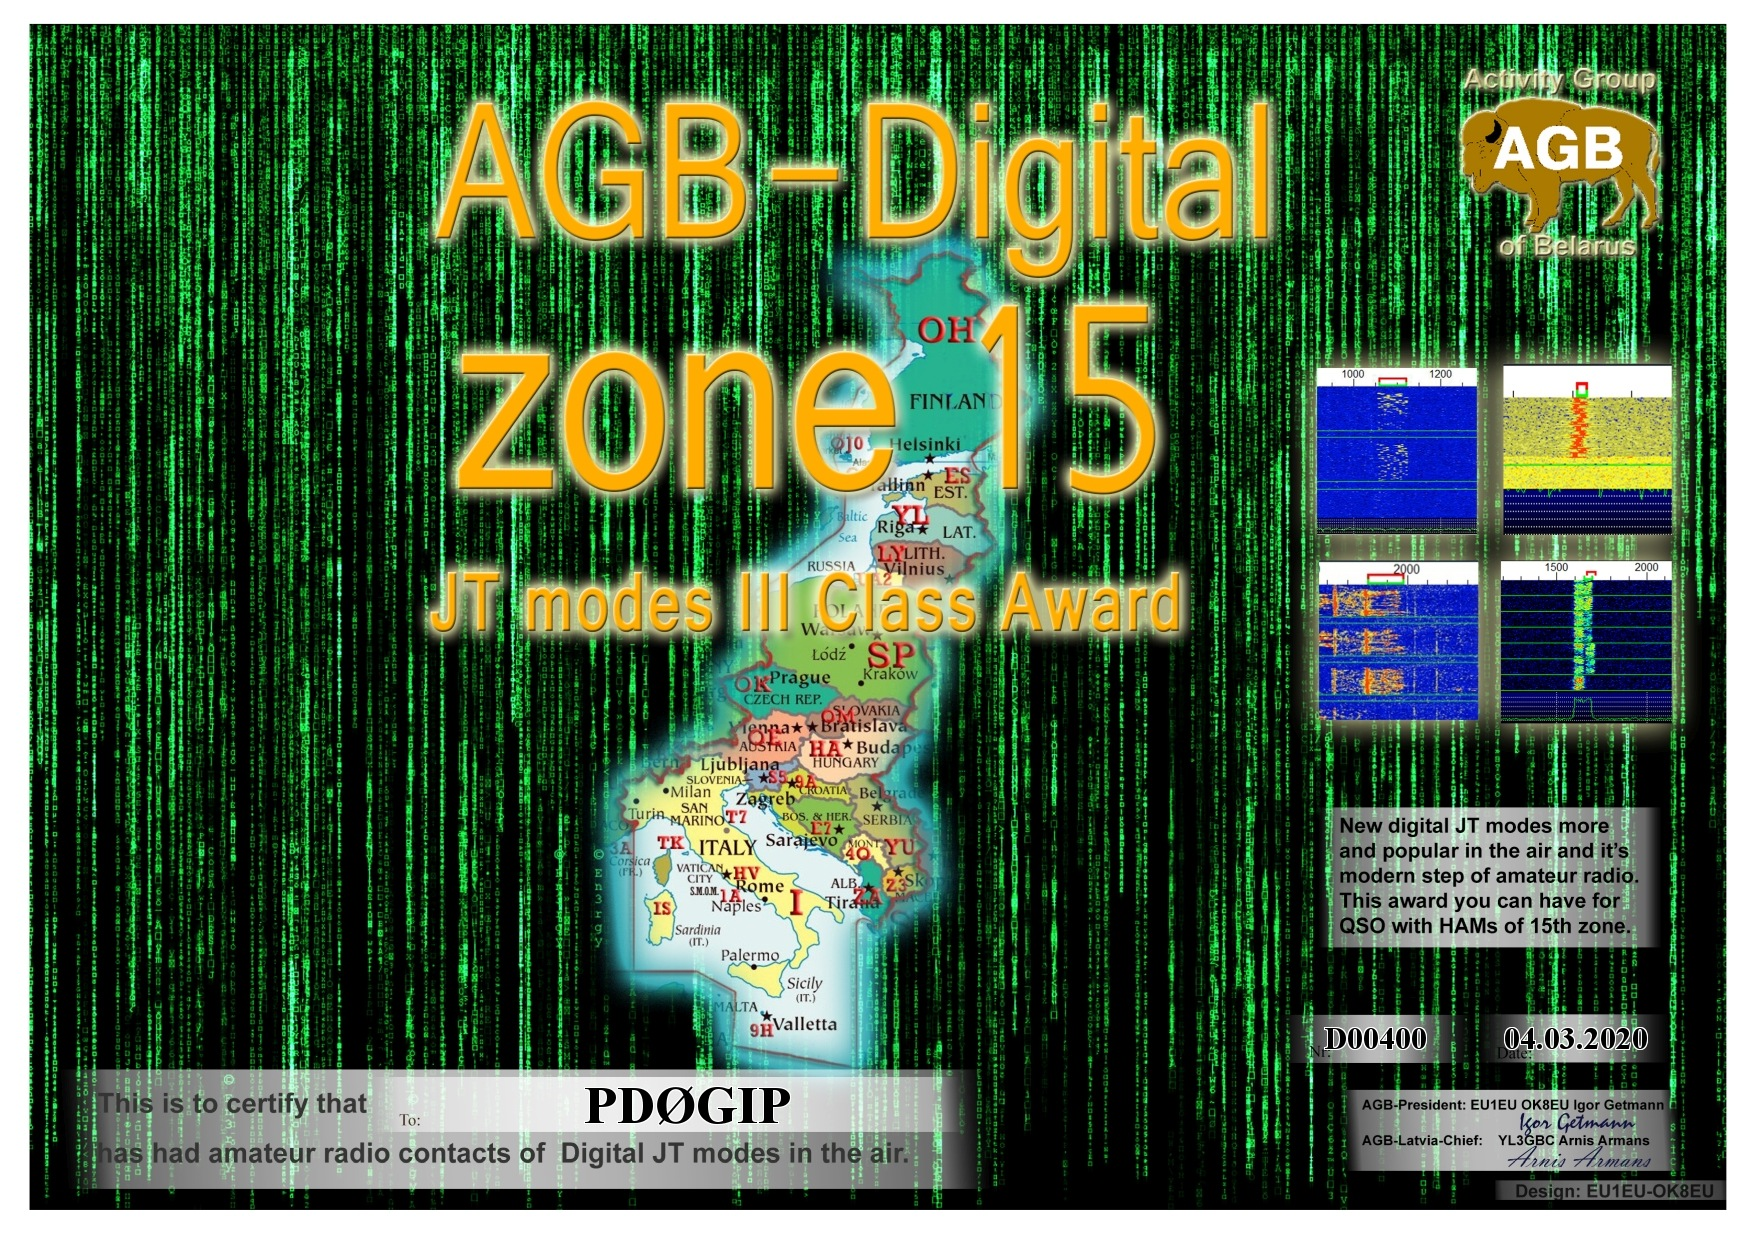 PD0GIP ZONE15 BASIC III AGB